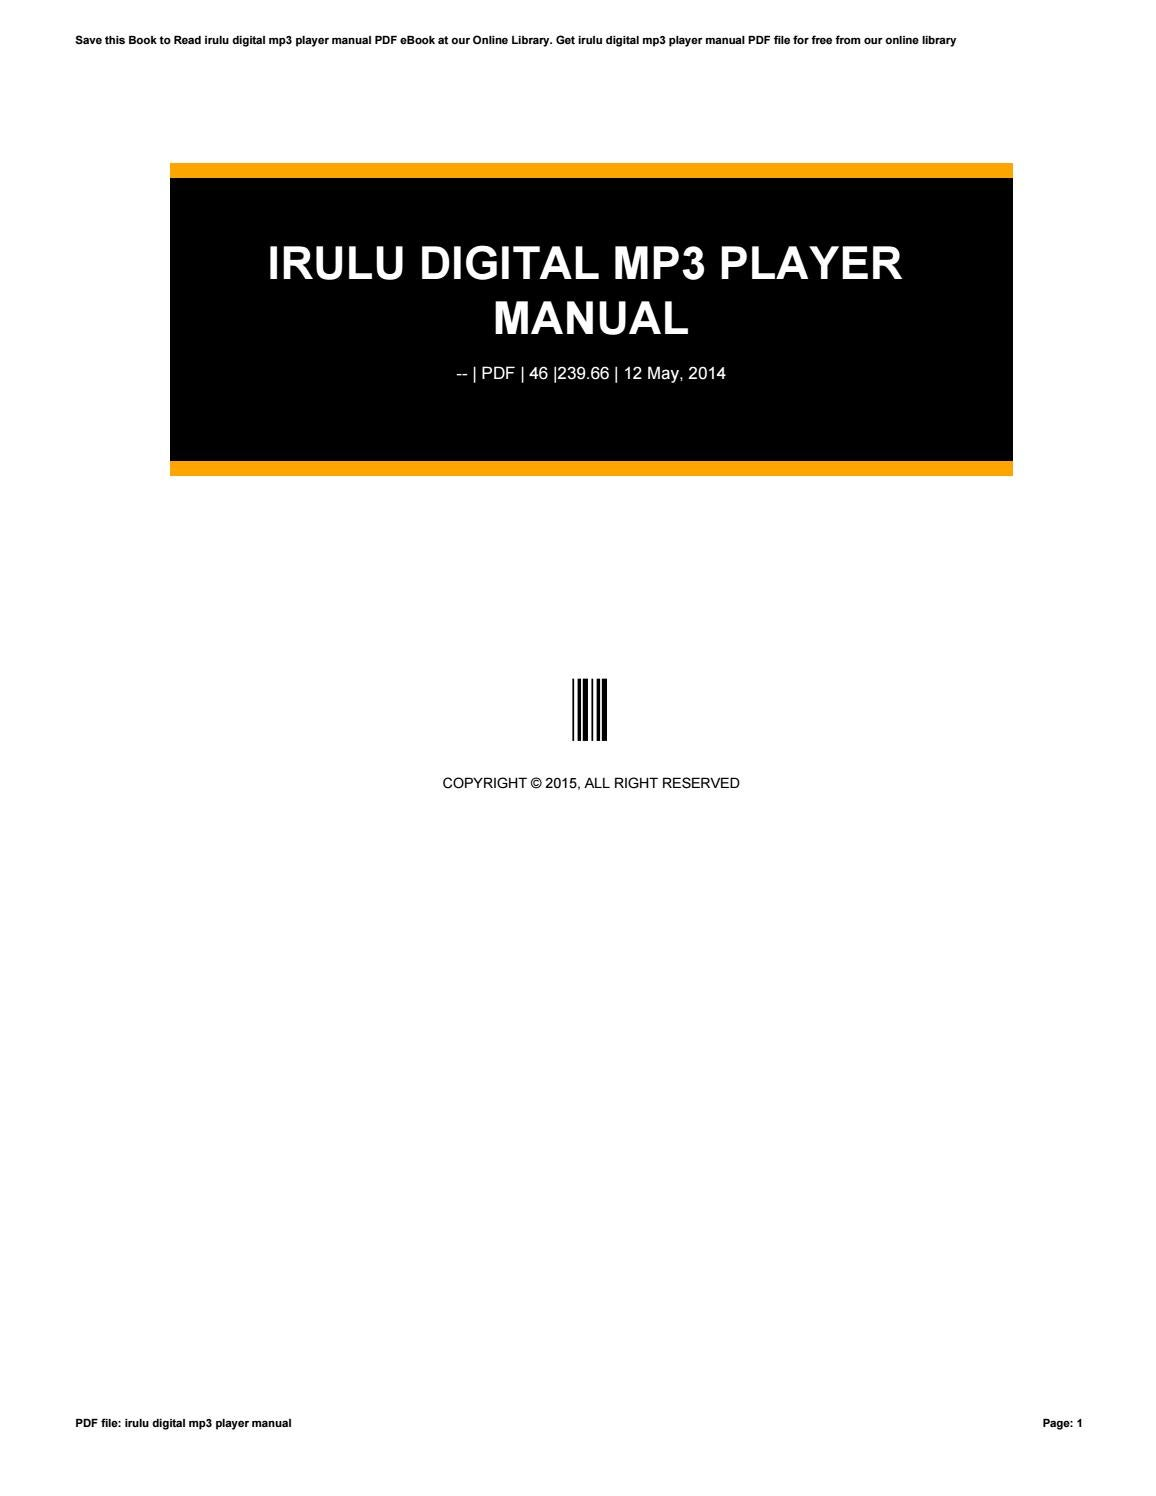 digital multimedia player mp3 manual